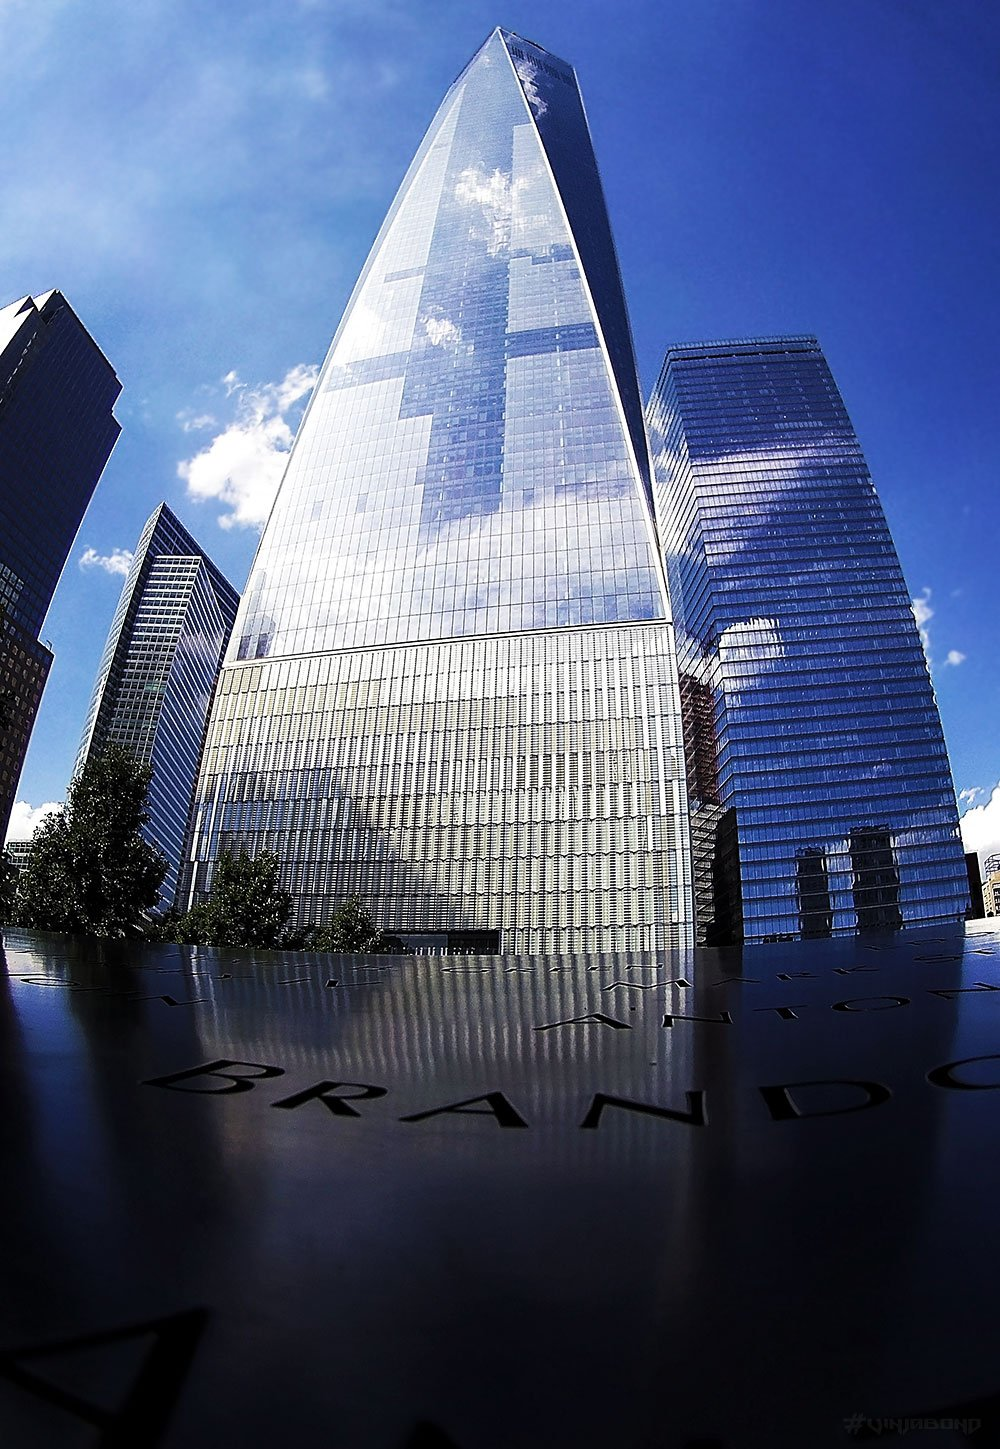 The Freedom Tower, One World Trade Center in New York /// VINJABOND